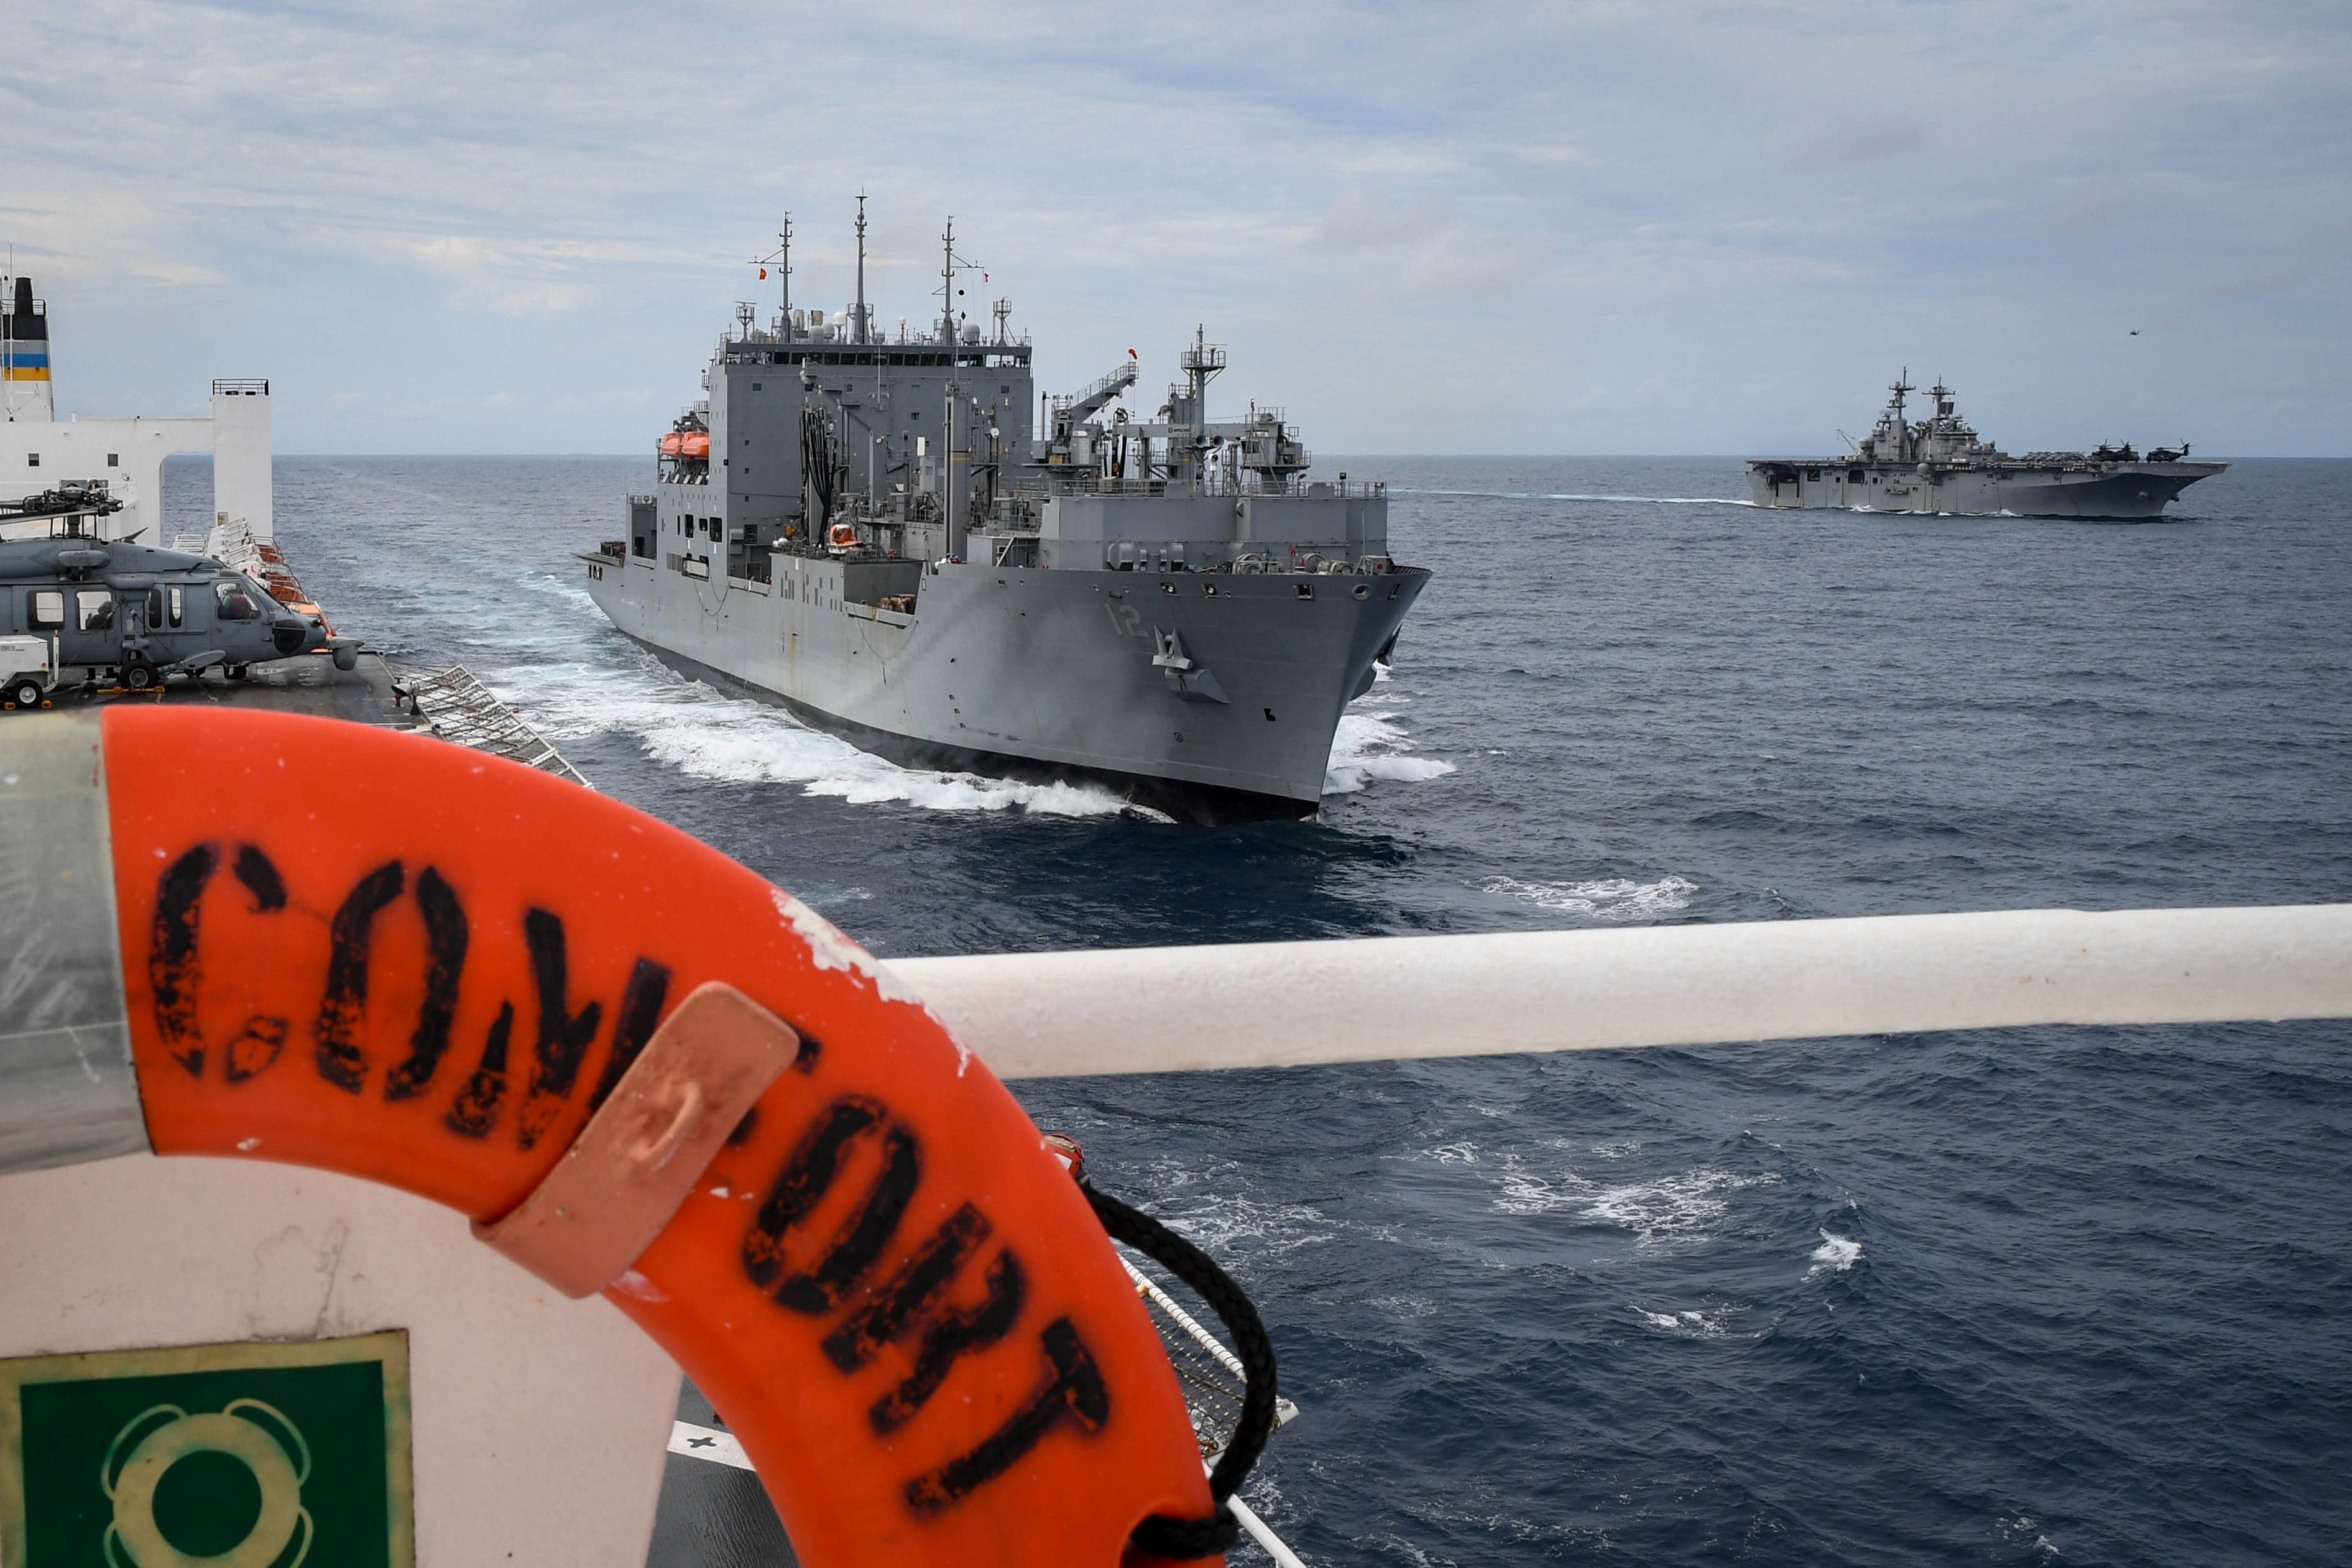 Meeting the Navy's Obligations For Humanitarian Assistance